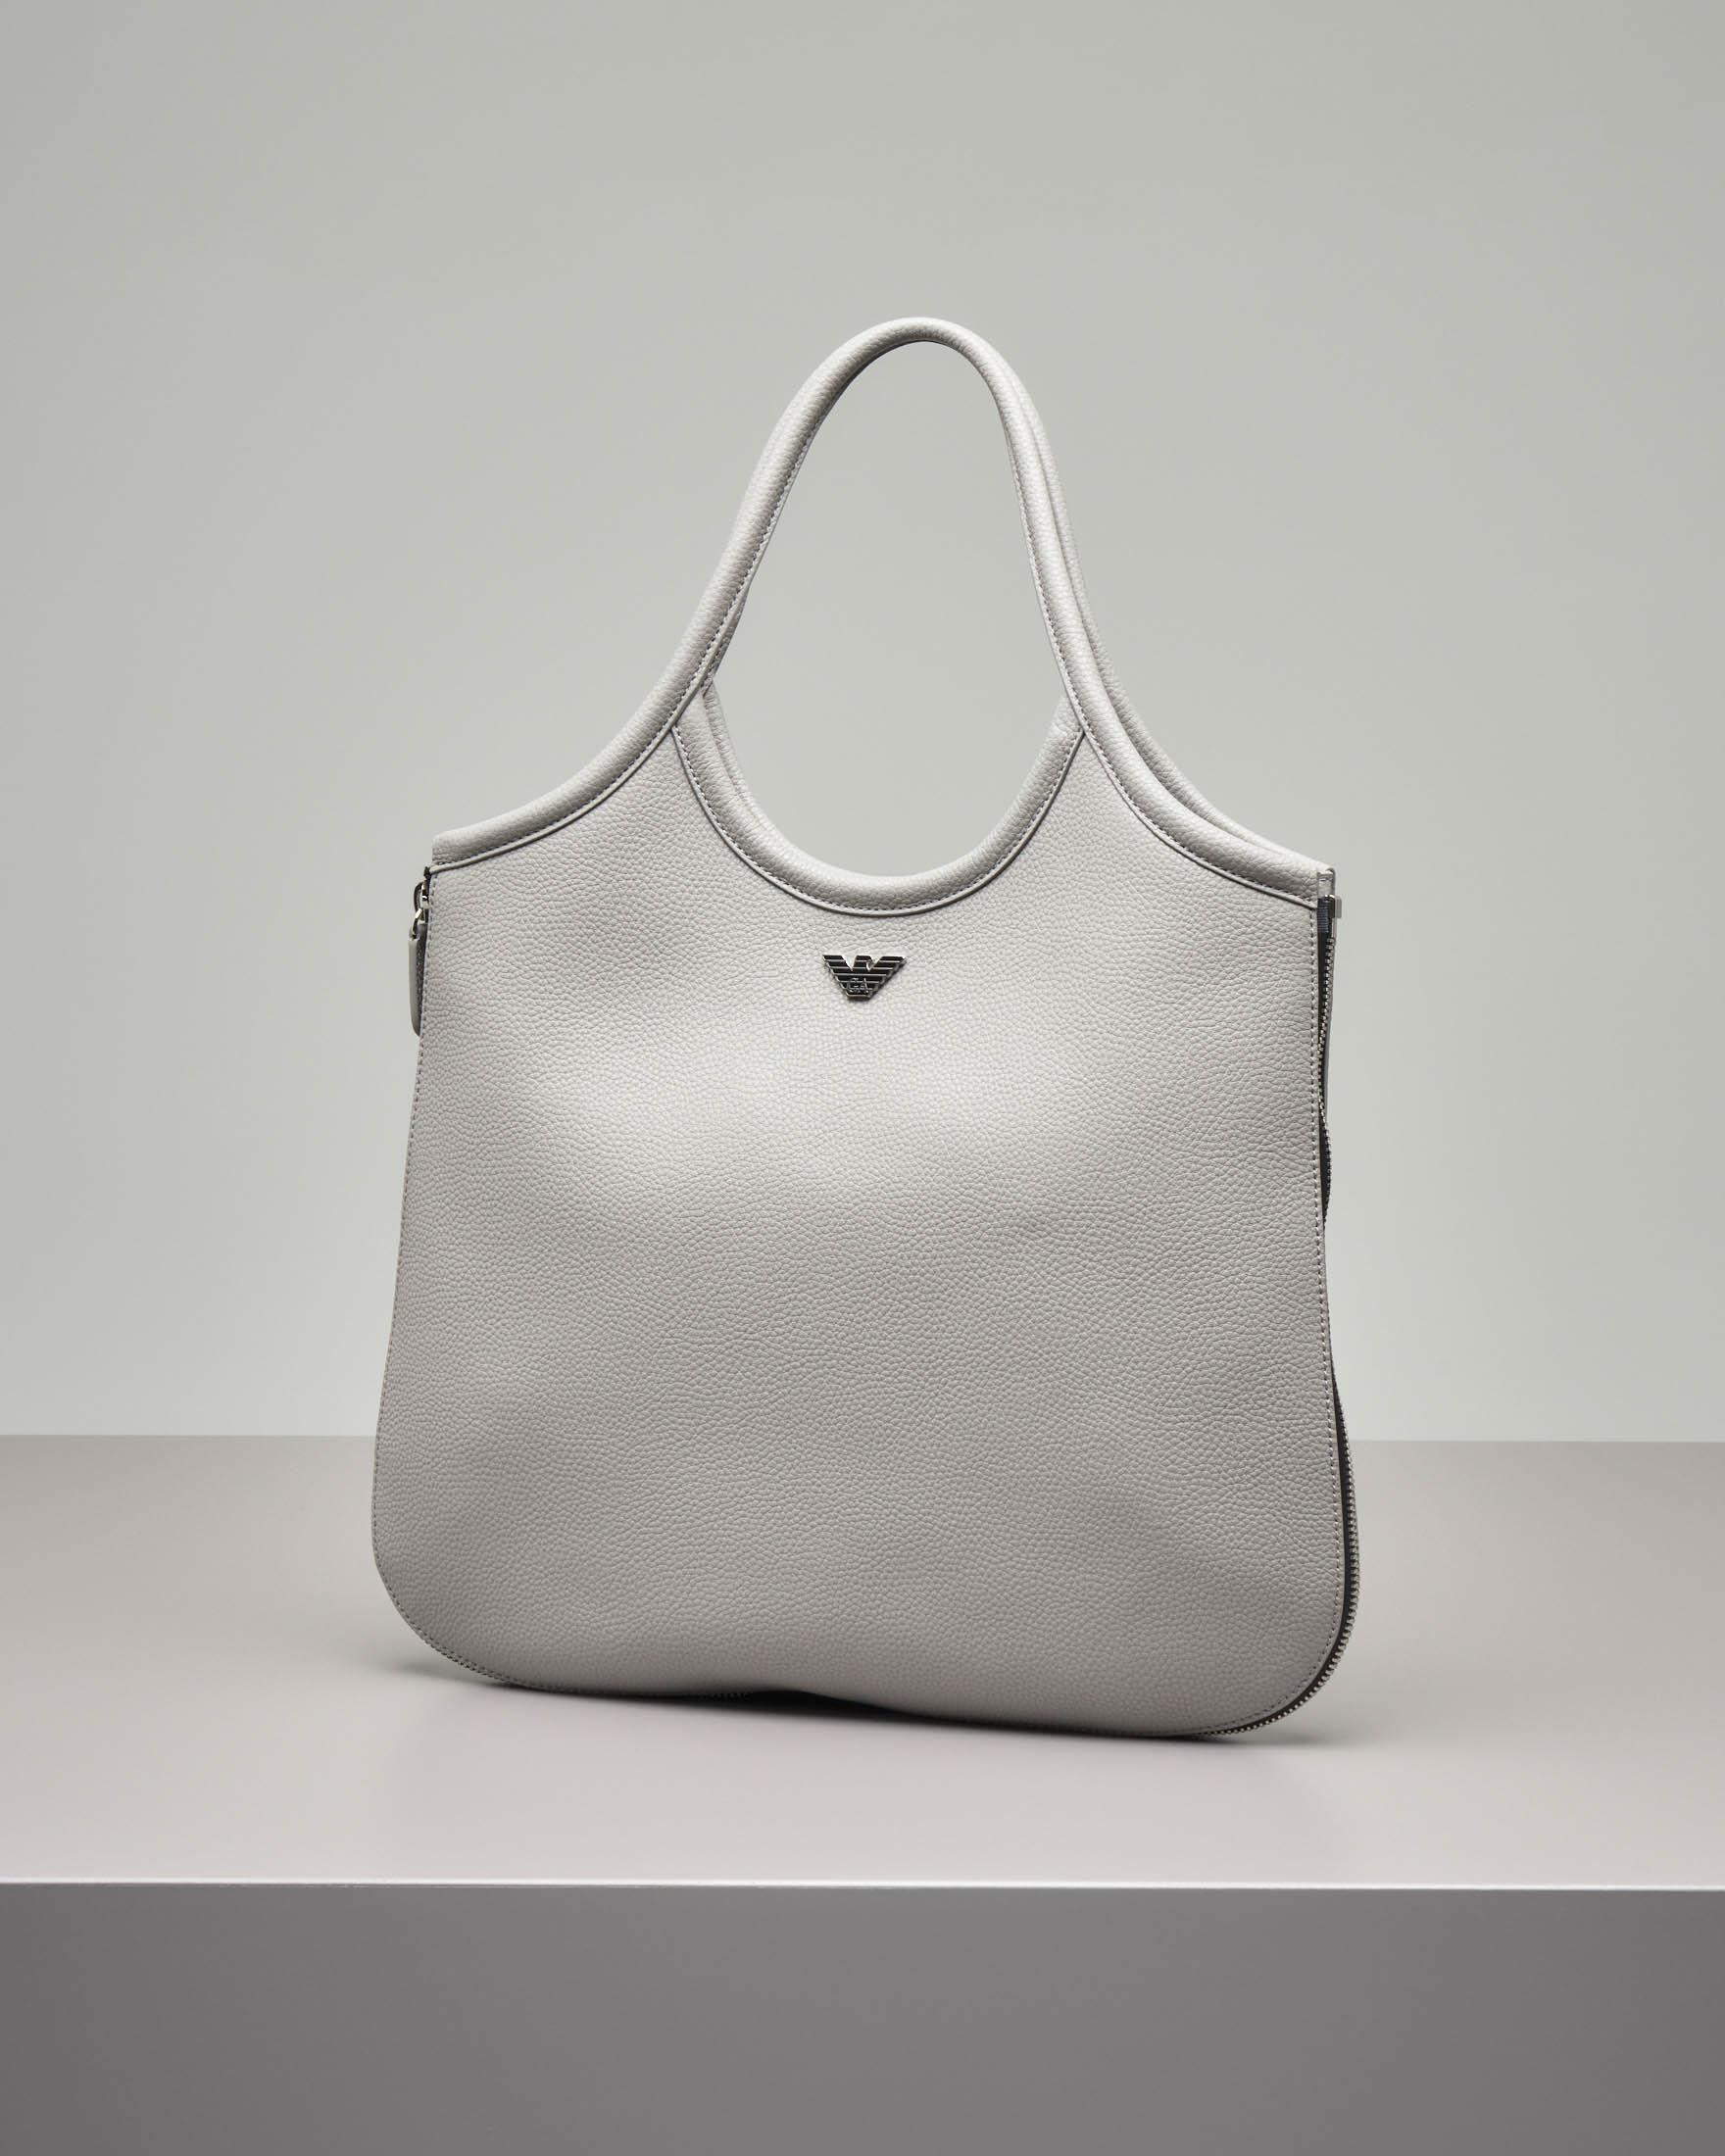 Borsa hobo in pelle color grigio